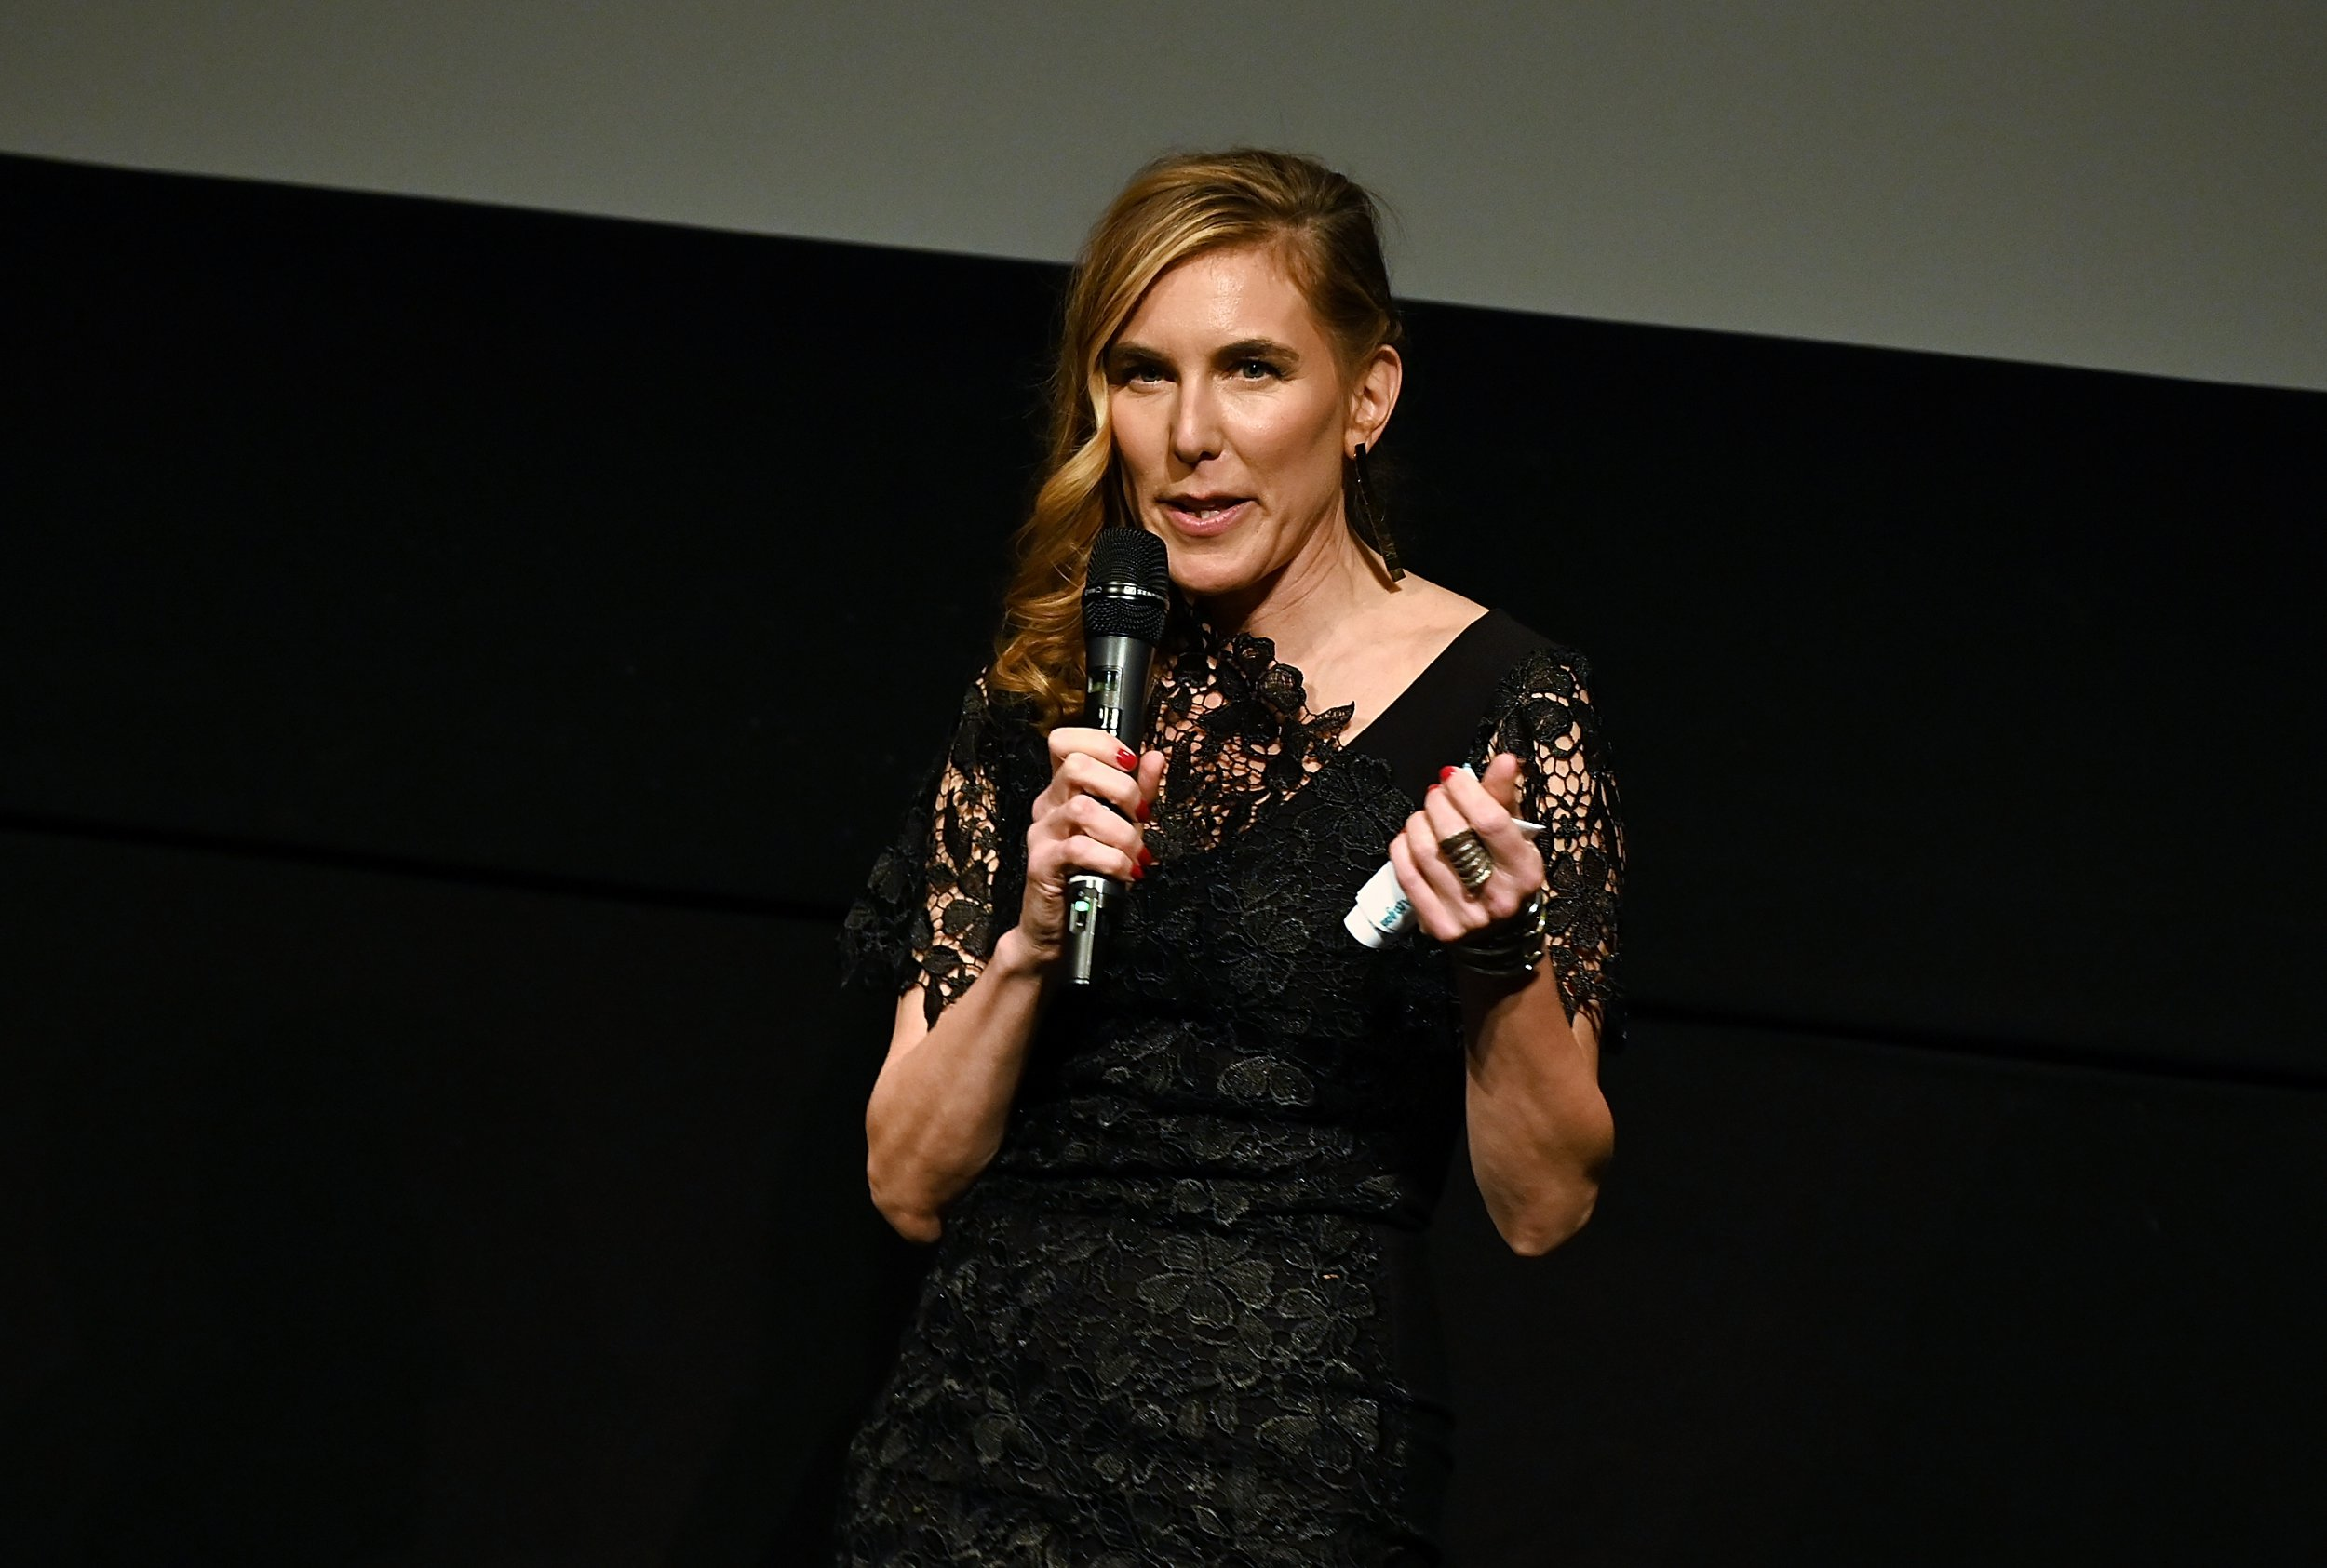 """NEW YORK, NY - FEBRUARY 26: Director/executive producer Amy Berg introduces NY premiere of HBO's """"The Case Against Adnan Syed"""" at PURE NON FICTION on February 26, 2019 in New York City. (Photo by Slaven Vlasic/Getty Images for HBO)"""